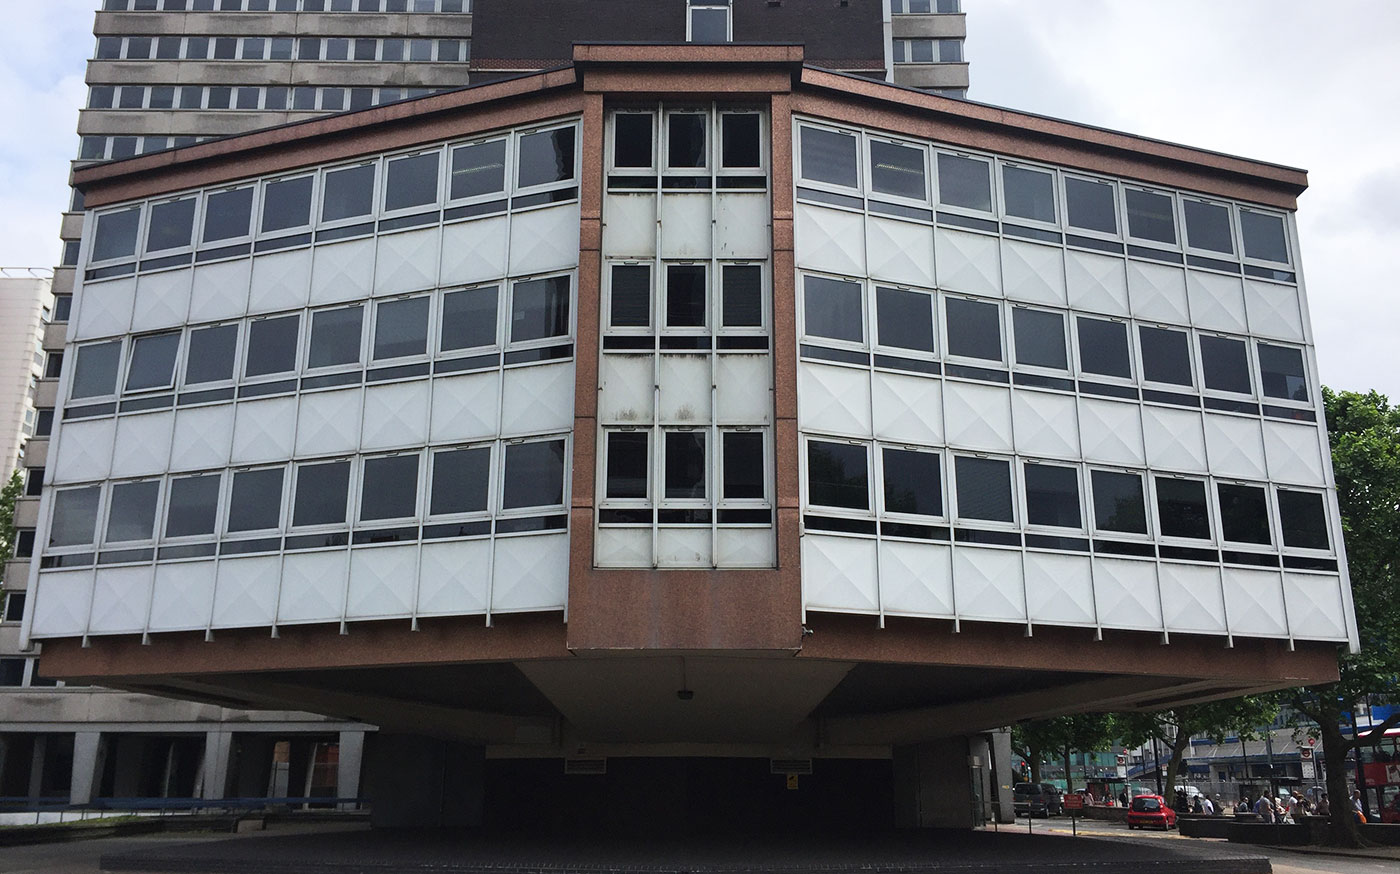 Apollo House Croydon